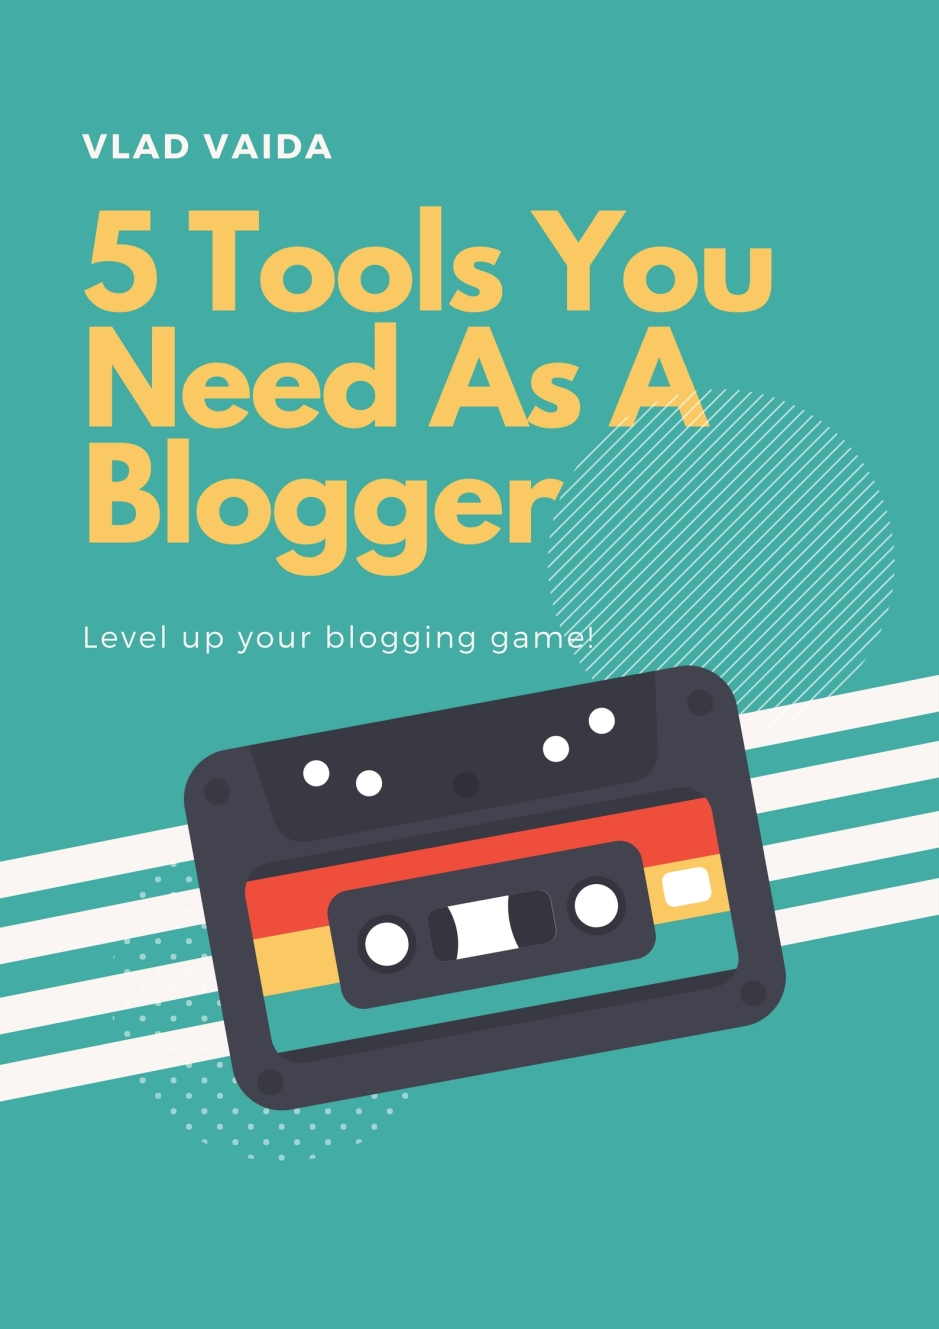 5 Tools You Neeed As A Blogger1 (1)